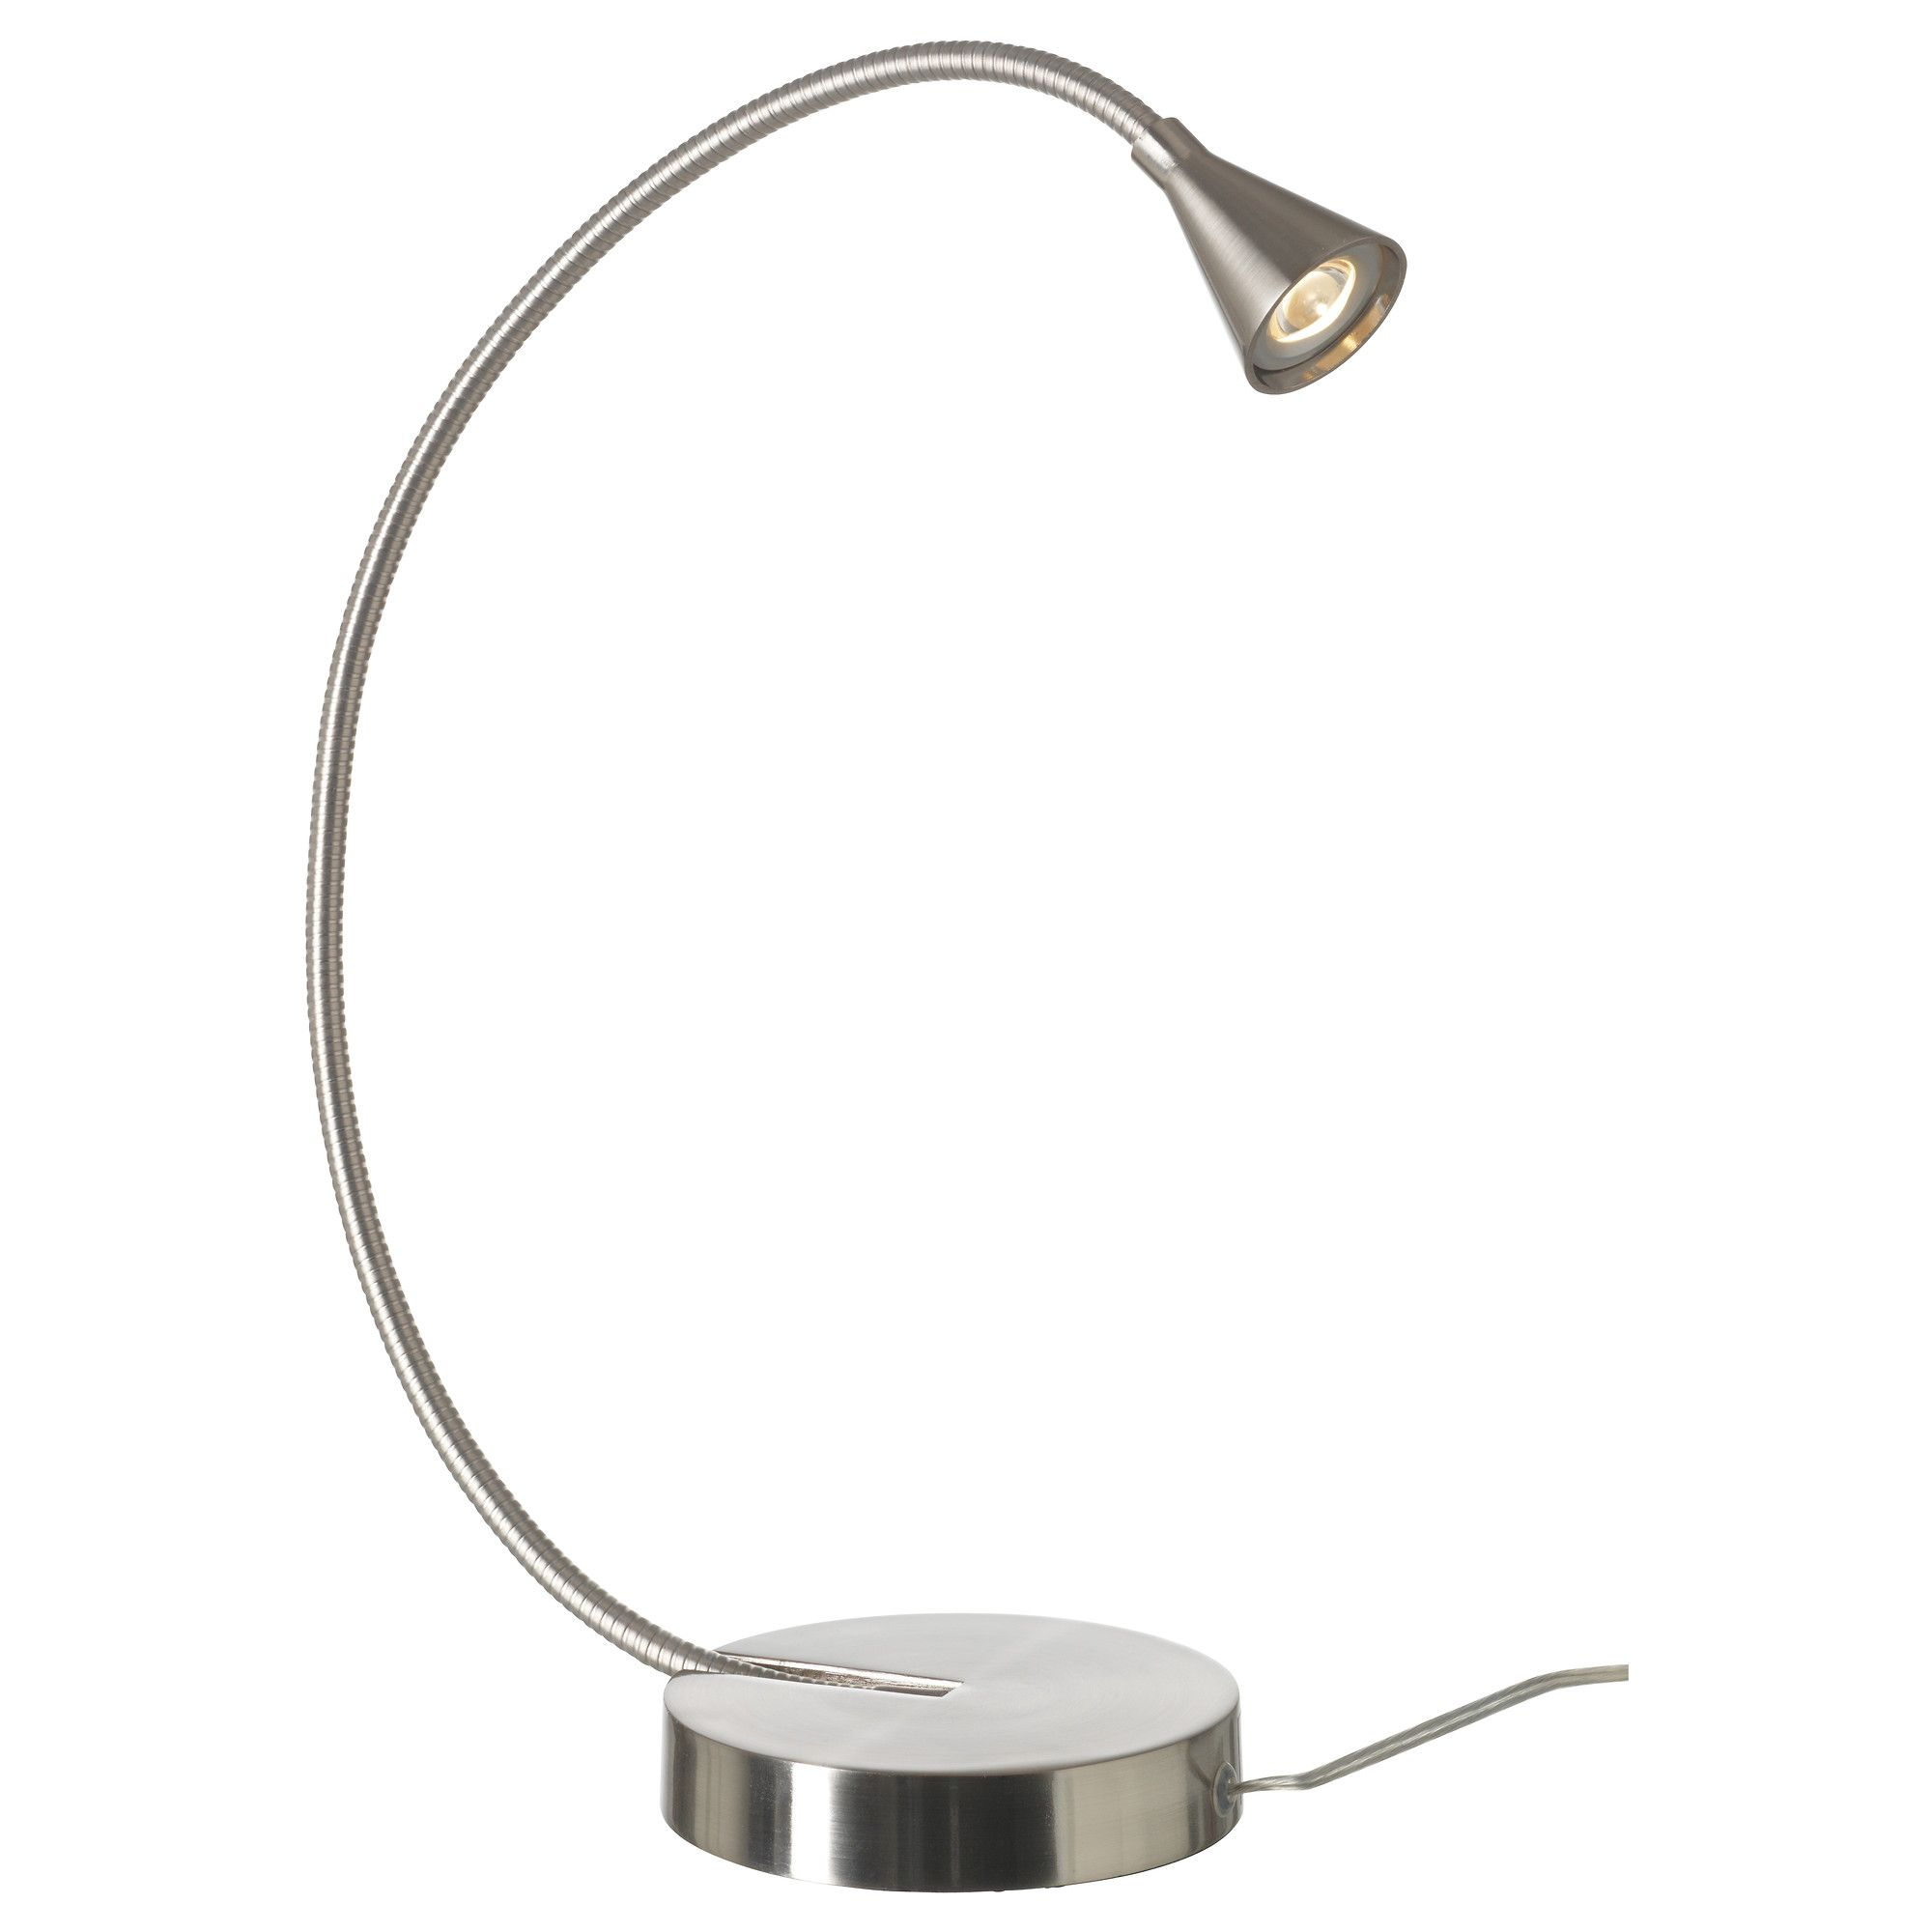 Ikea Led Desk Lamp - Lighting the tived led desk lamp from ikea features a flexible yielding post and